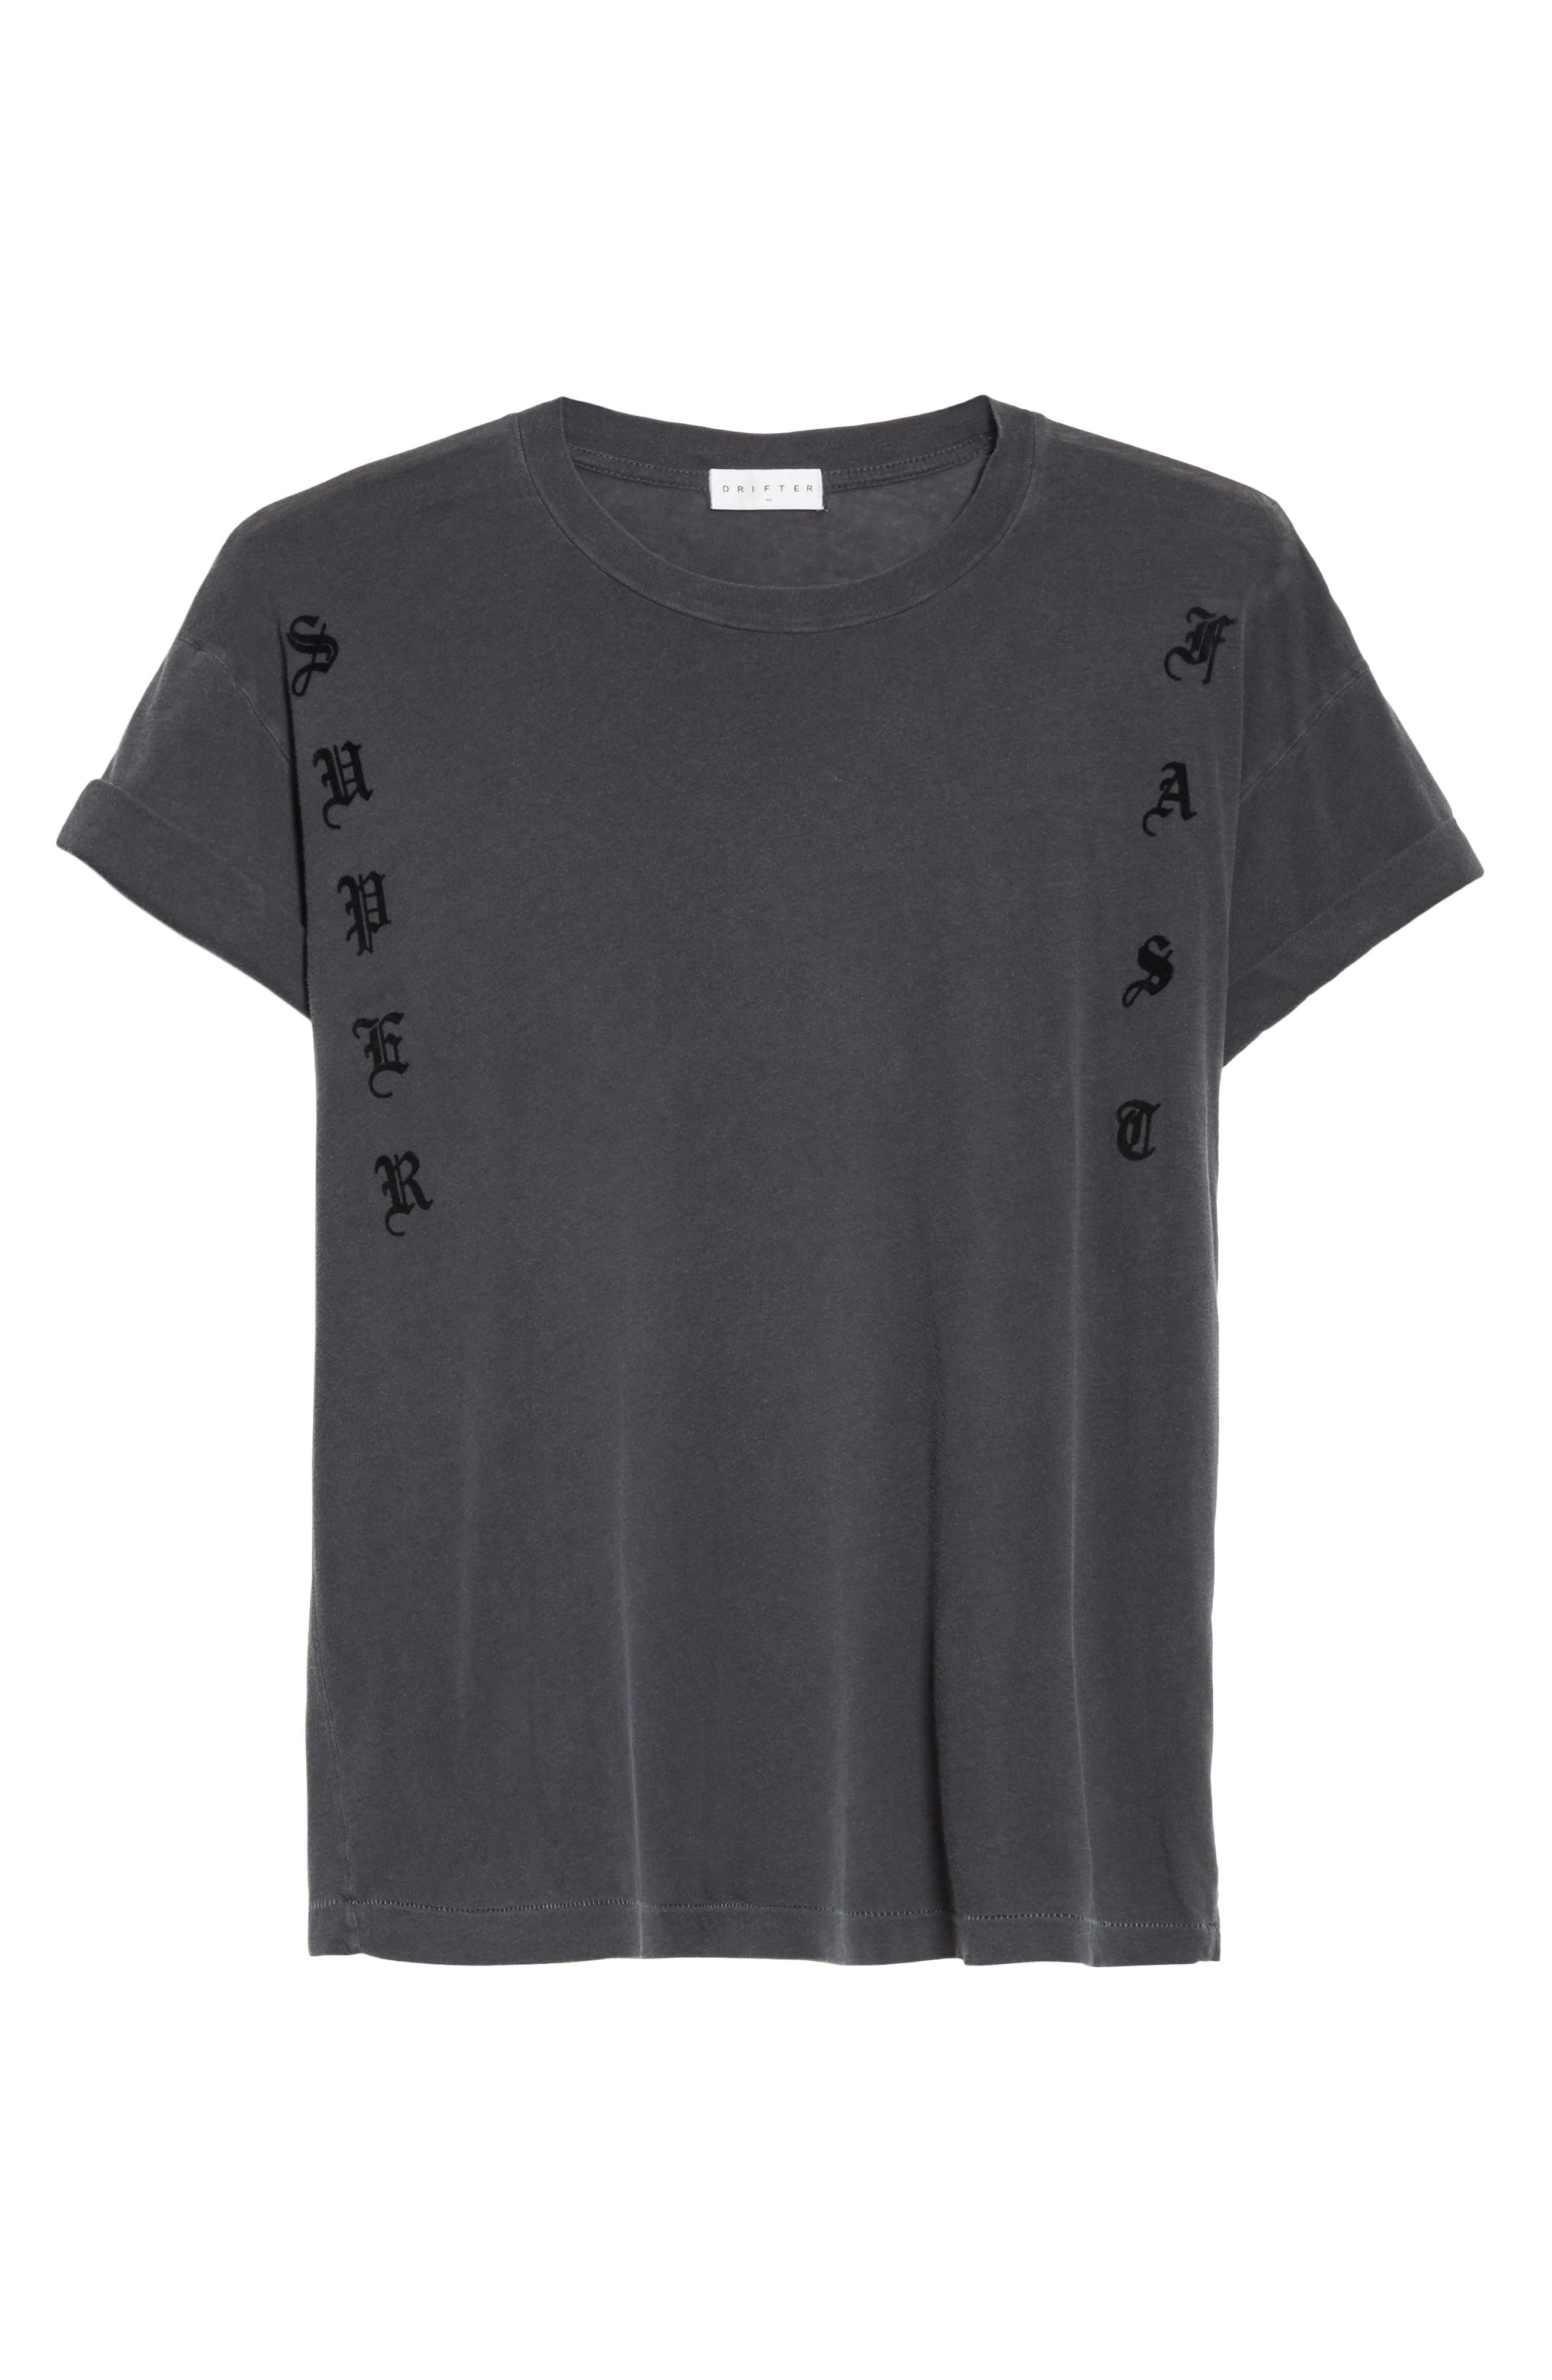 Abassi Embroidered T-Shirt,                             Alternate thumbnail 6, color,                             Blk Pigment